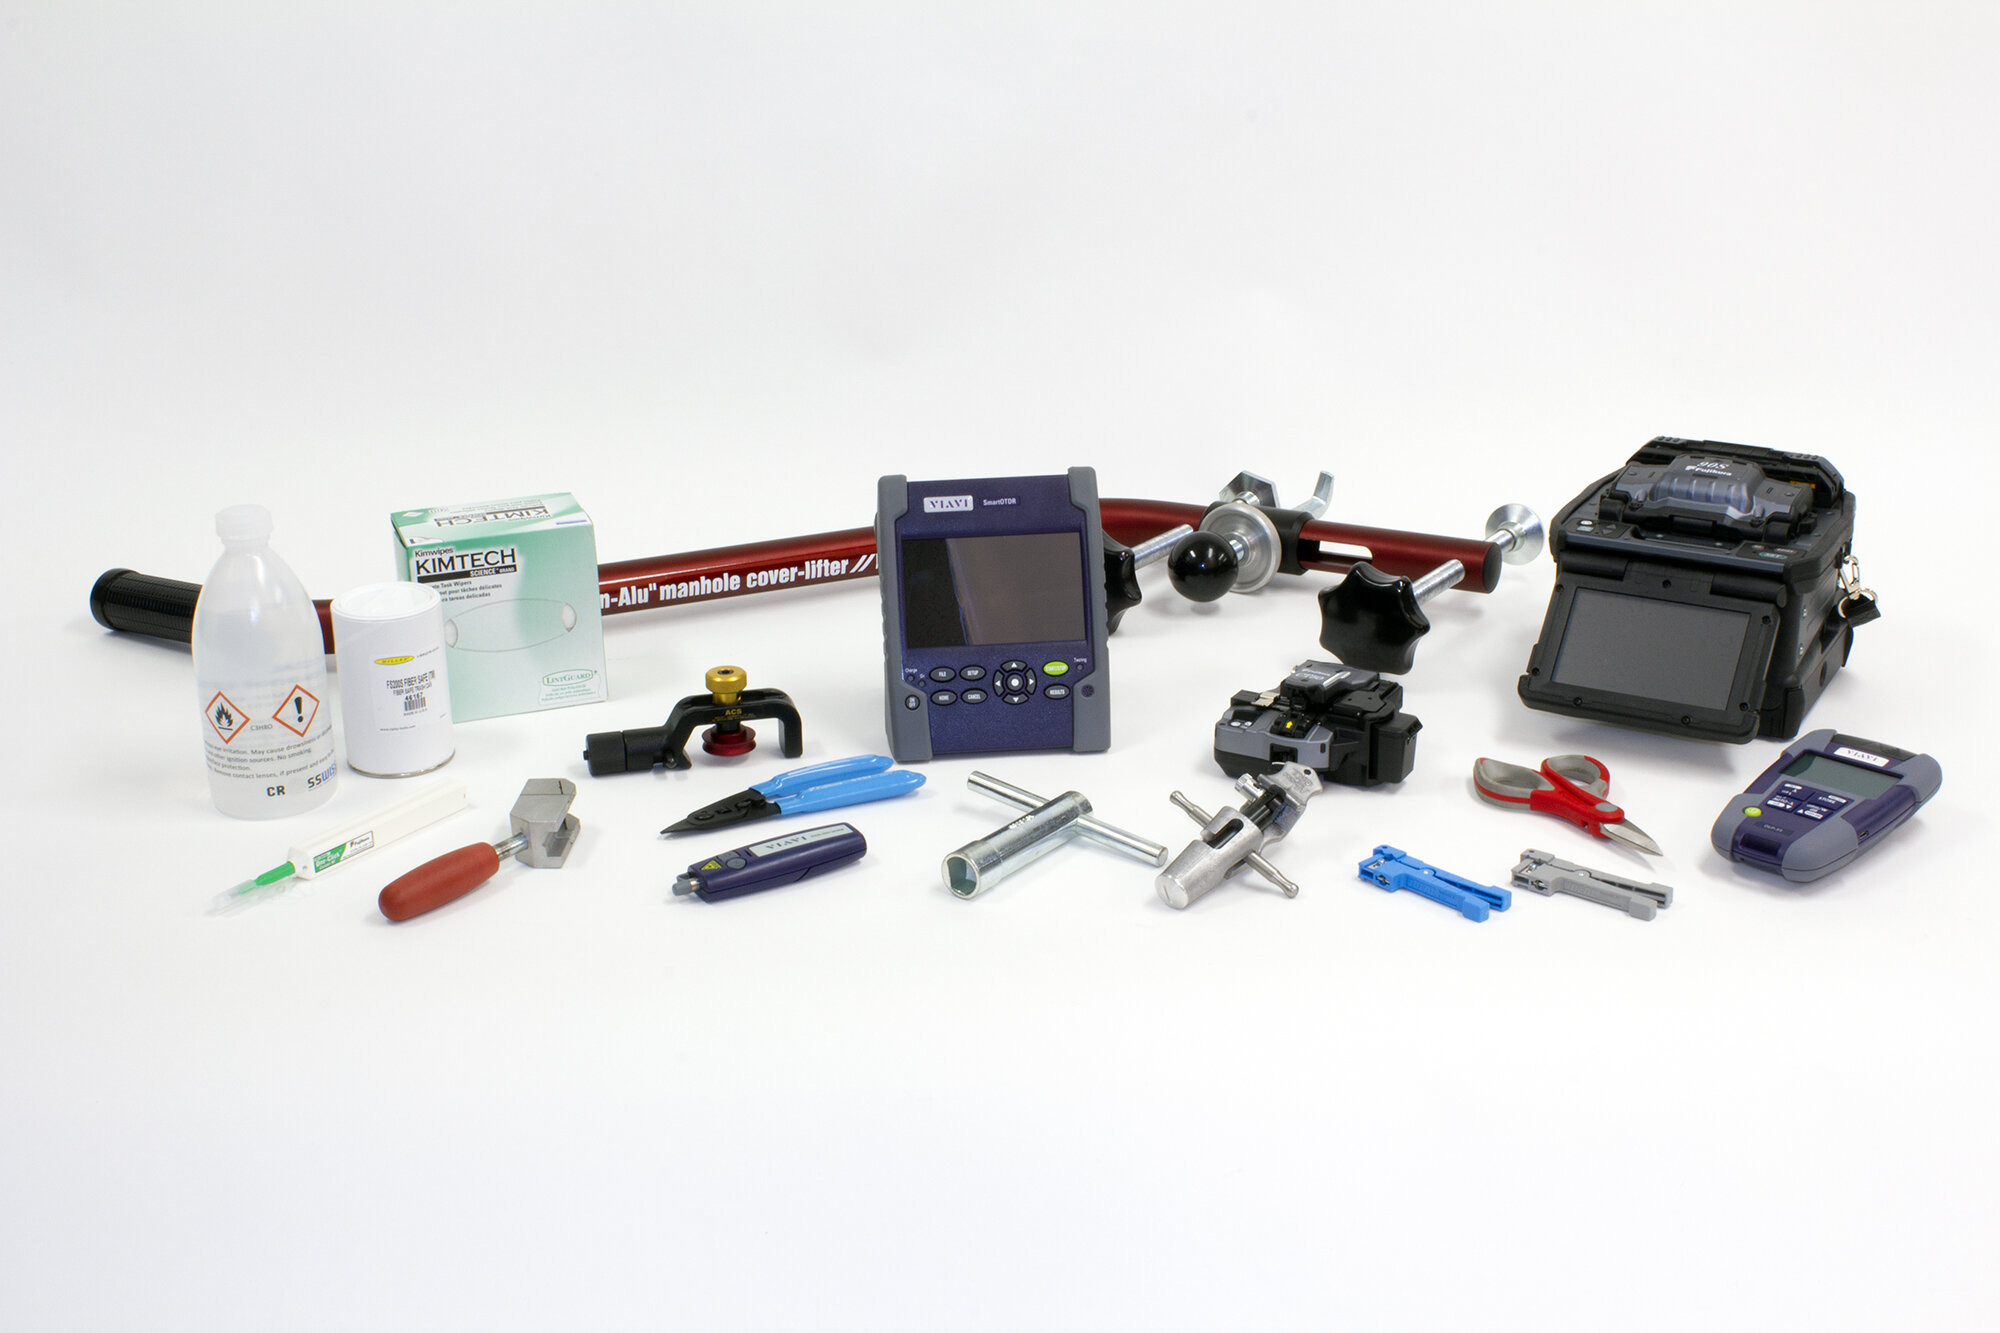 Kit for splicing and assembly of OFP's